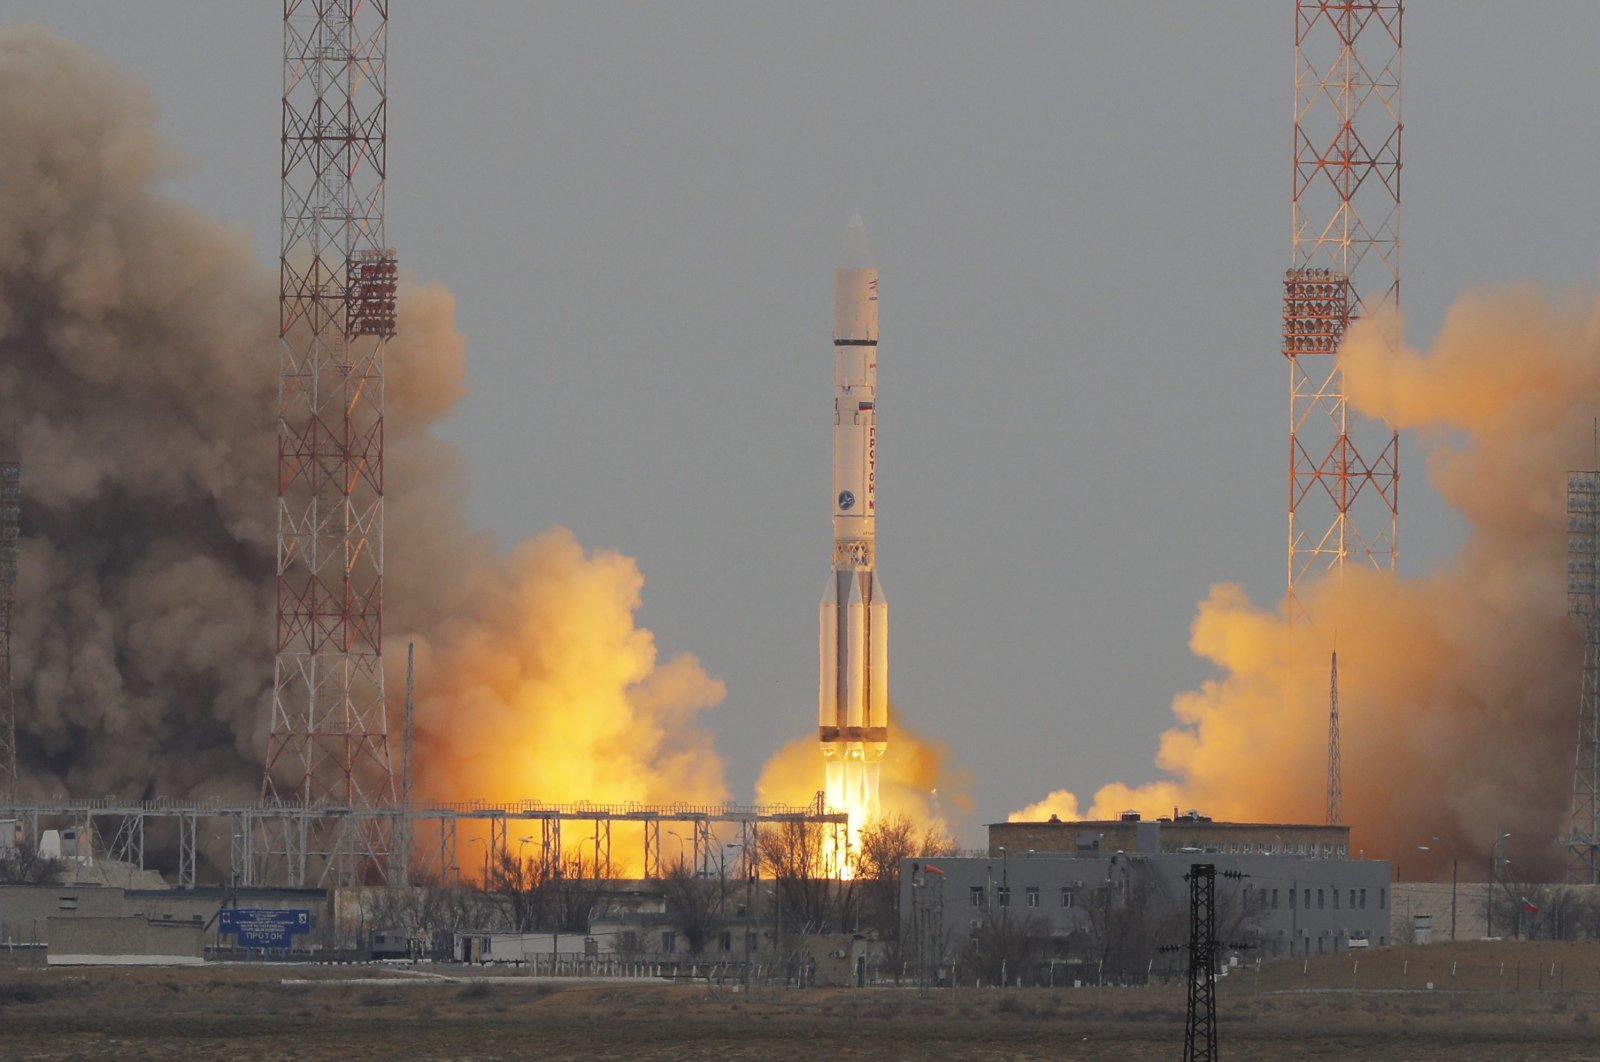 The Proton-M rocket booster blasts off at the Russian leased Baikonur cosmodrome, Kazakhstan, Monday, March 14, 2016. The Russian rocket carries an orbiter for measuring atmospheric gases of Mars and a Mars lander of the 'ExoMars 2016' mission. 'ExoMars 2016' is an astrobiology mission by the European Space Agency (ESA) in collaboration with the Russian Federal Space Agency. (AP Photo)